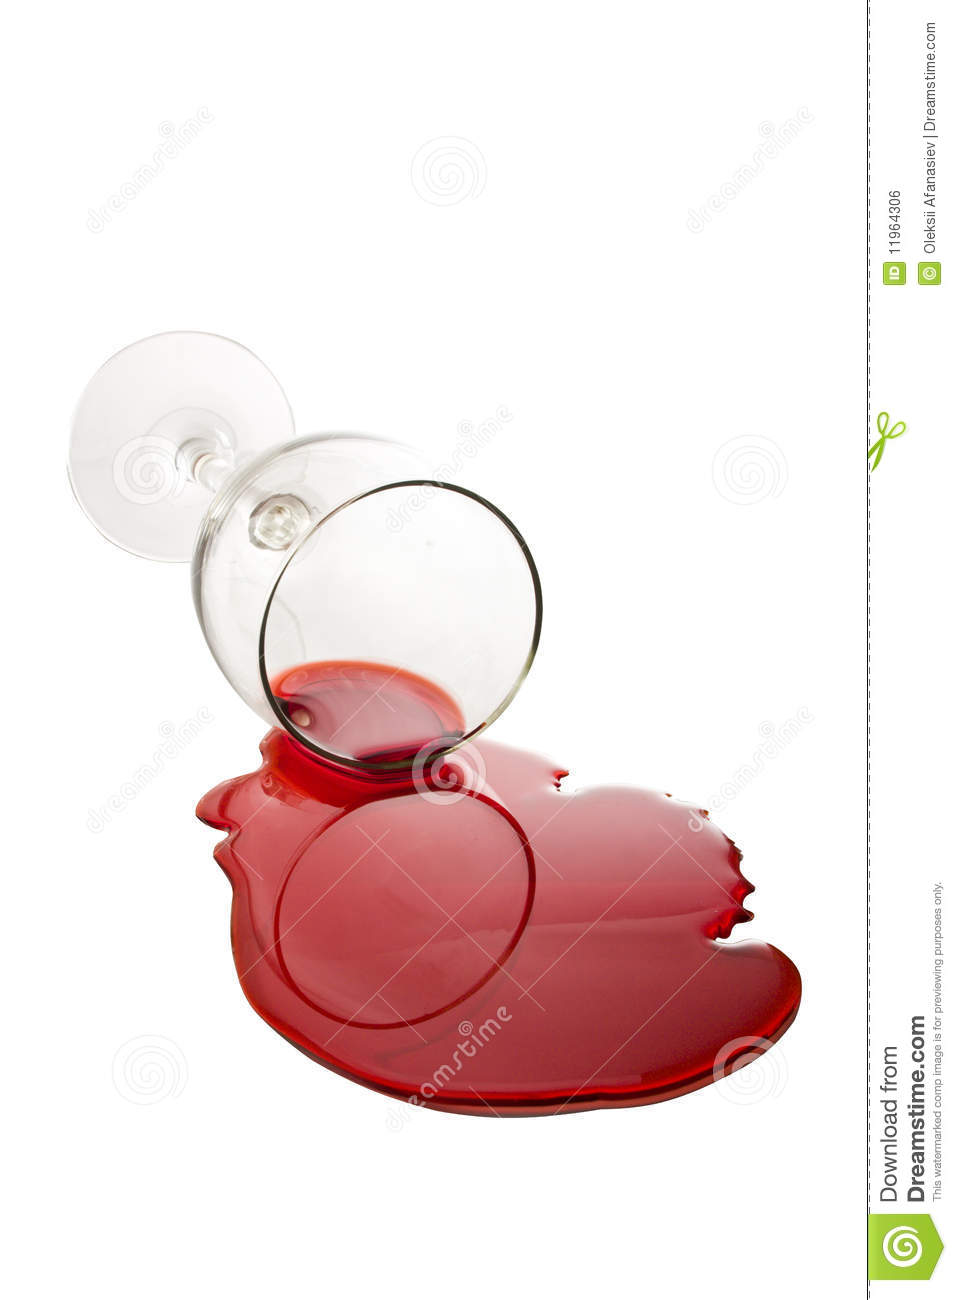 Spilled Wine Glass Royalty Free Stock Image   Image  11964306